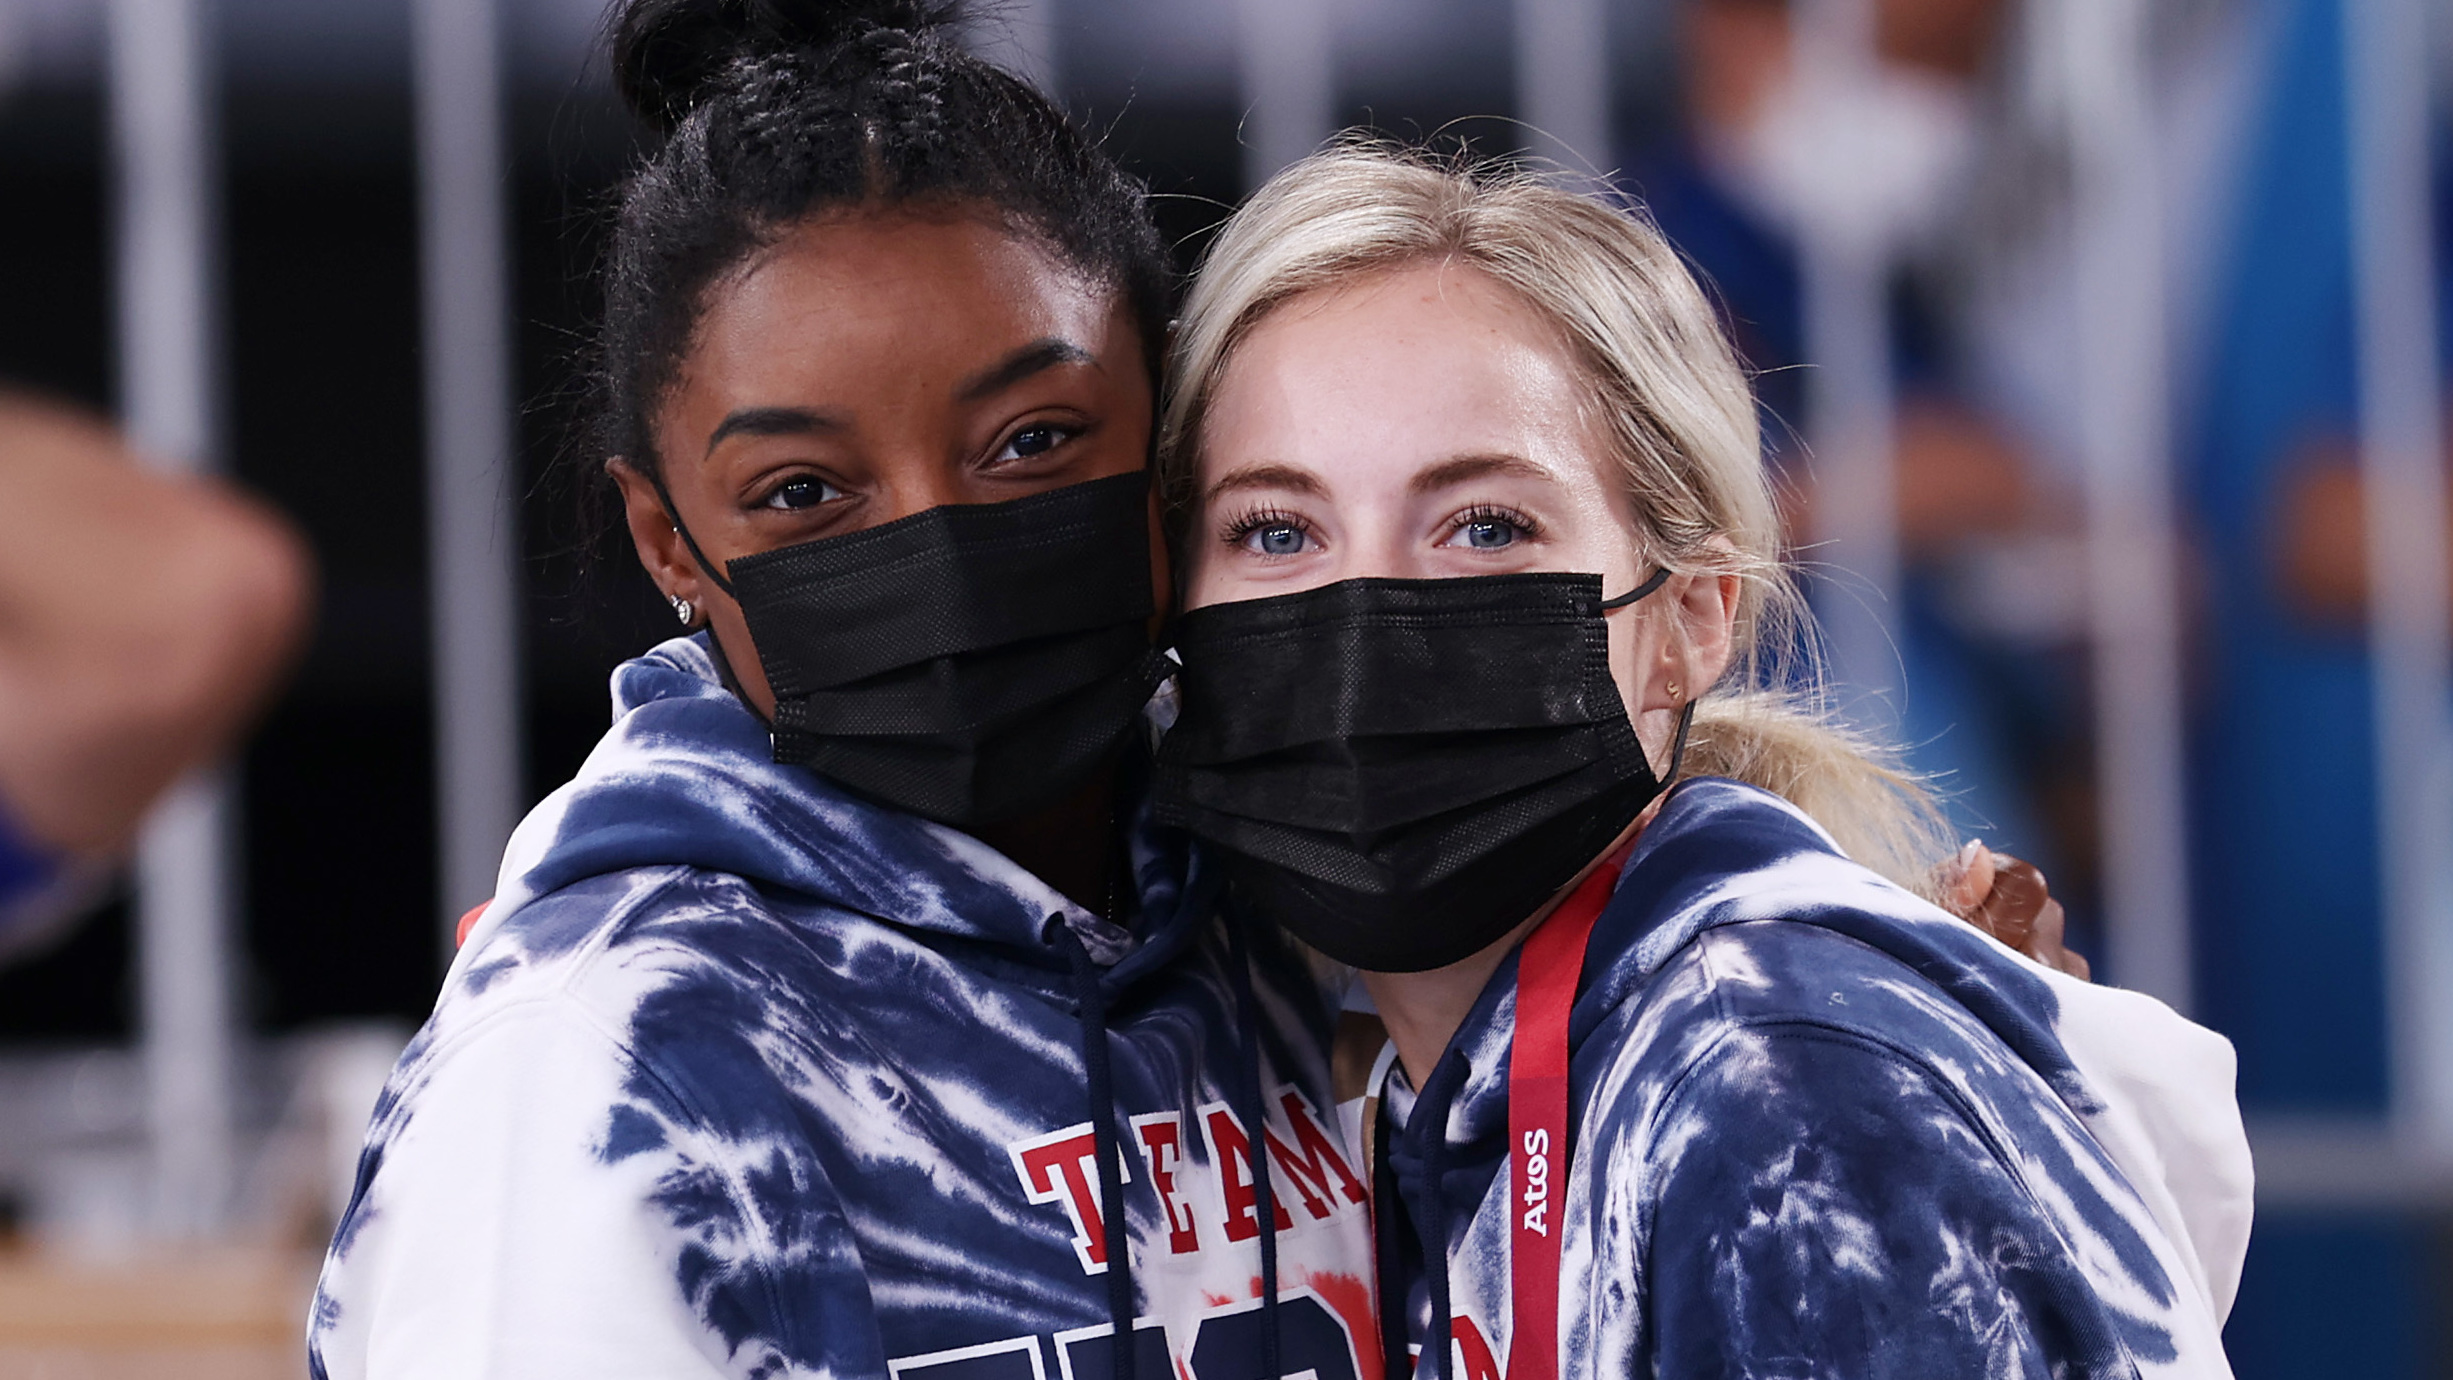 Simone Biles spoke at length about the reasons behind her withdrawal from the gymnastics team final. She's seen here on Wednesday with teammate MyKayla Skinner, as they watch the men's all-around final in Tokyo.